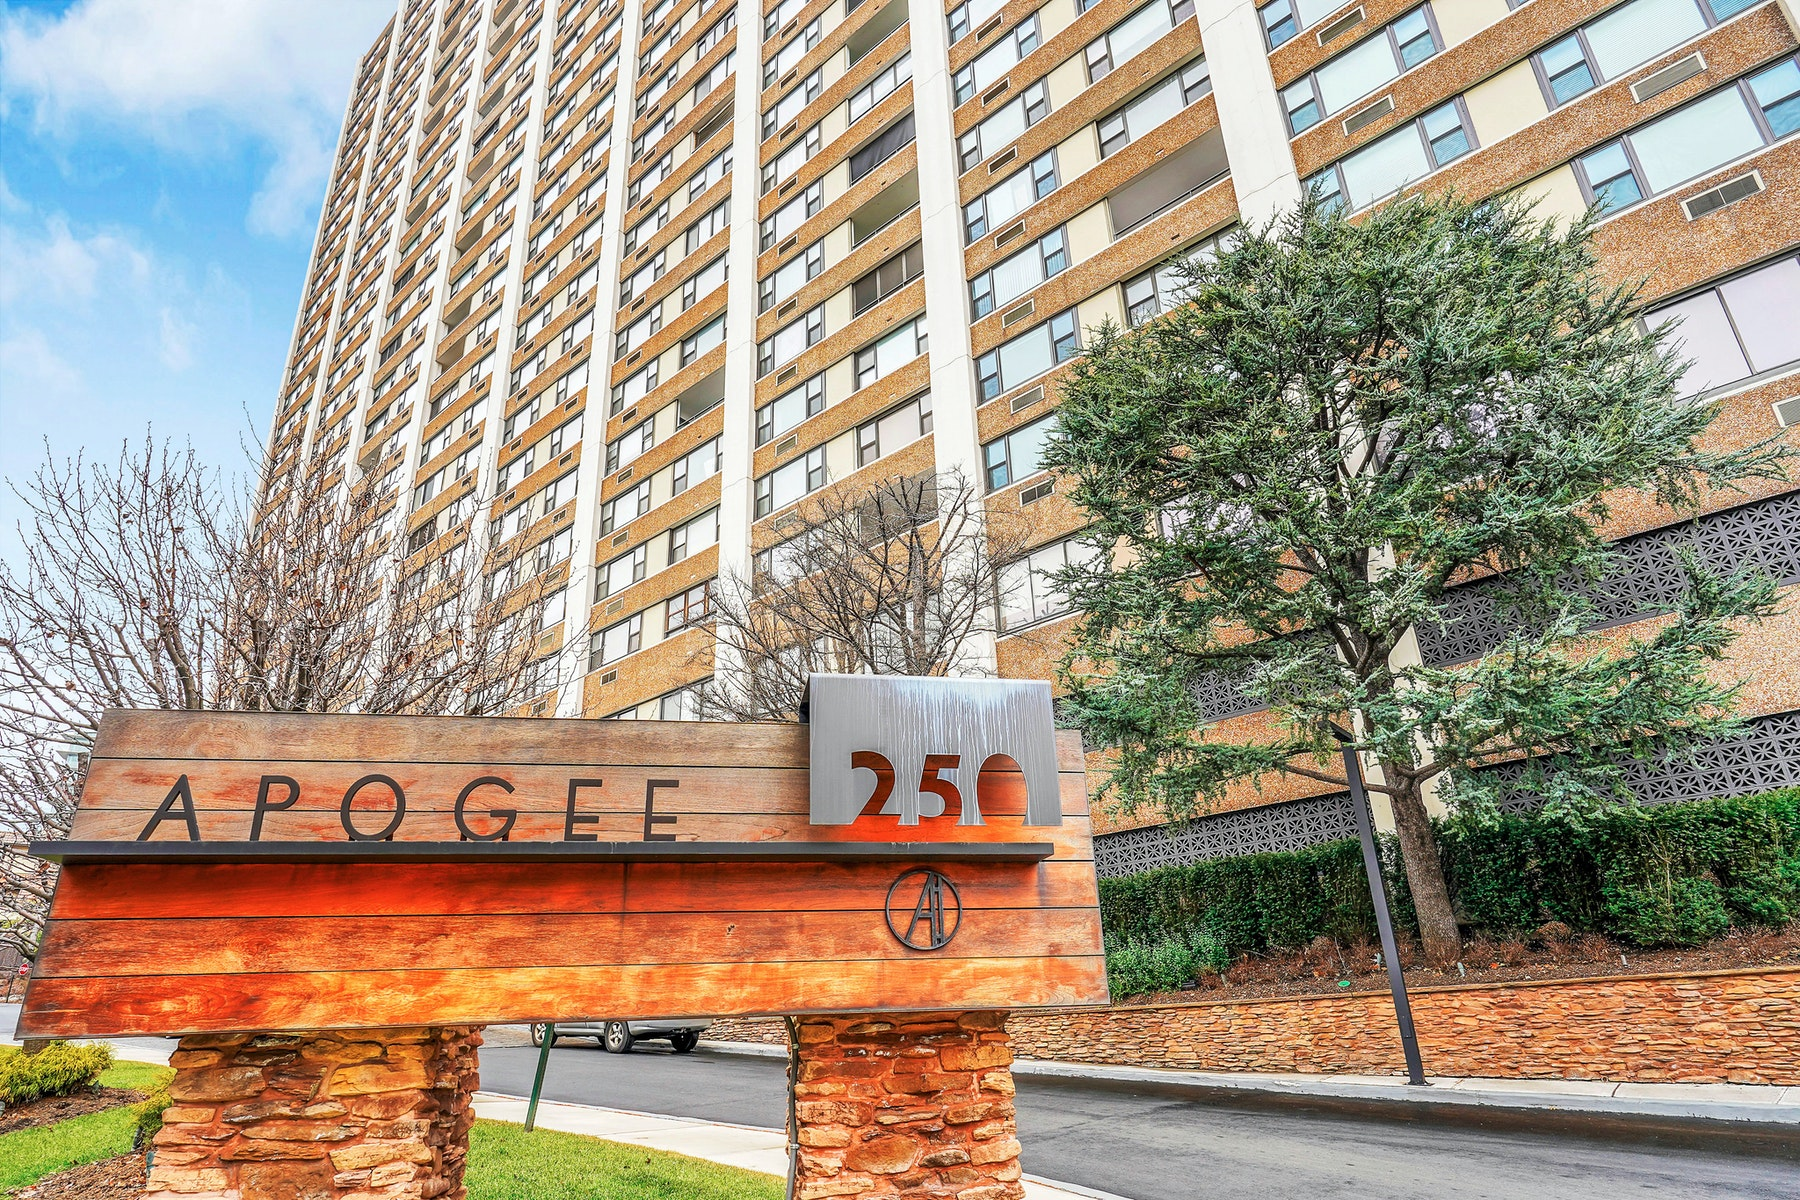 Co-op Properties for Sale at Apogee 250 Gorge RD 27C, Cliffside Park, New Jersey 07010 United States